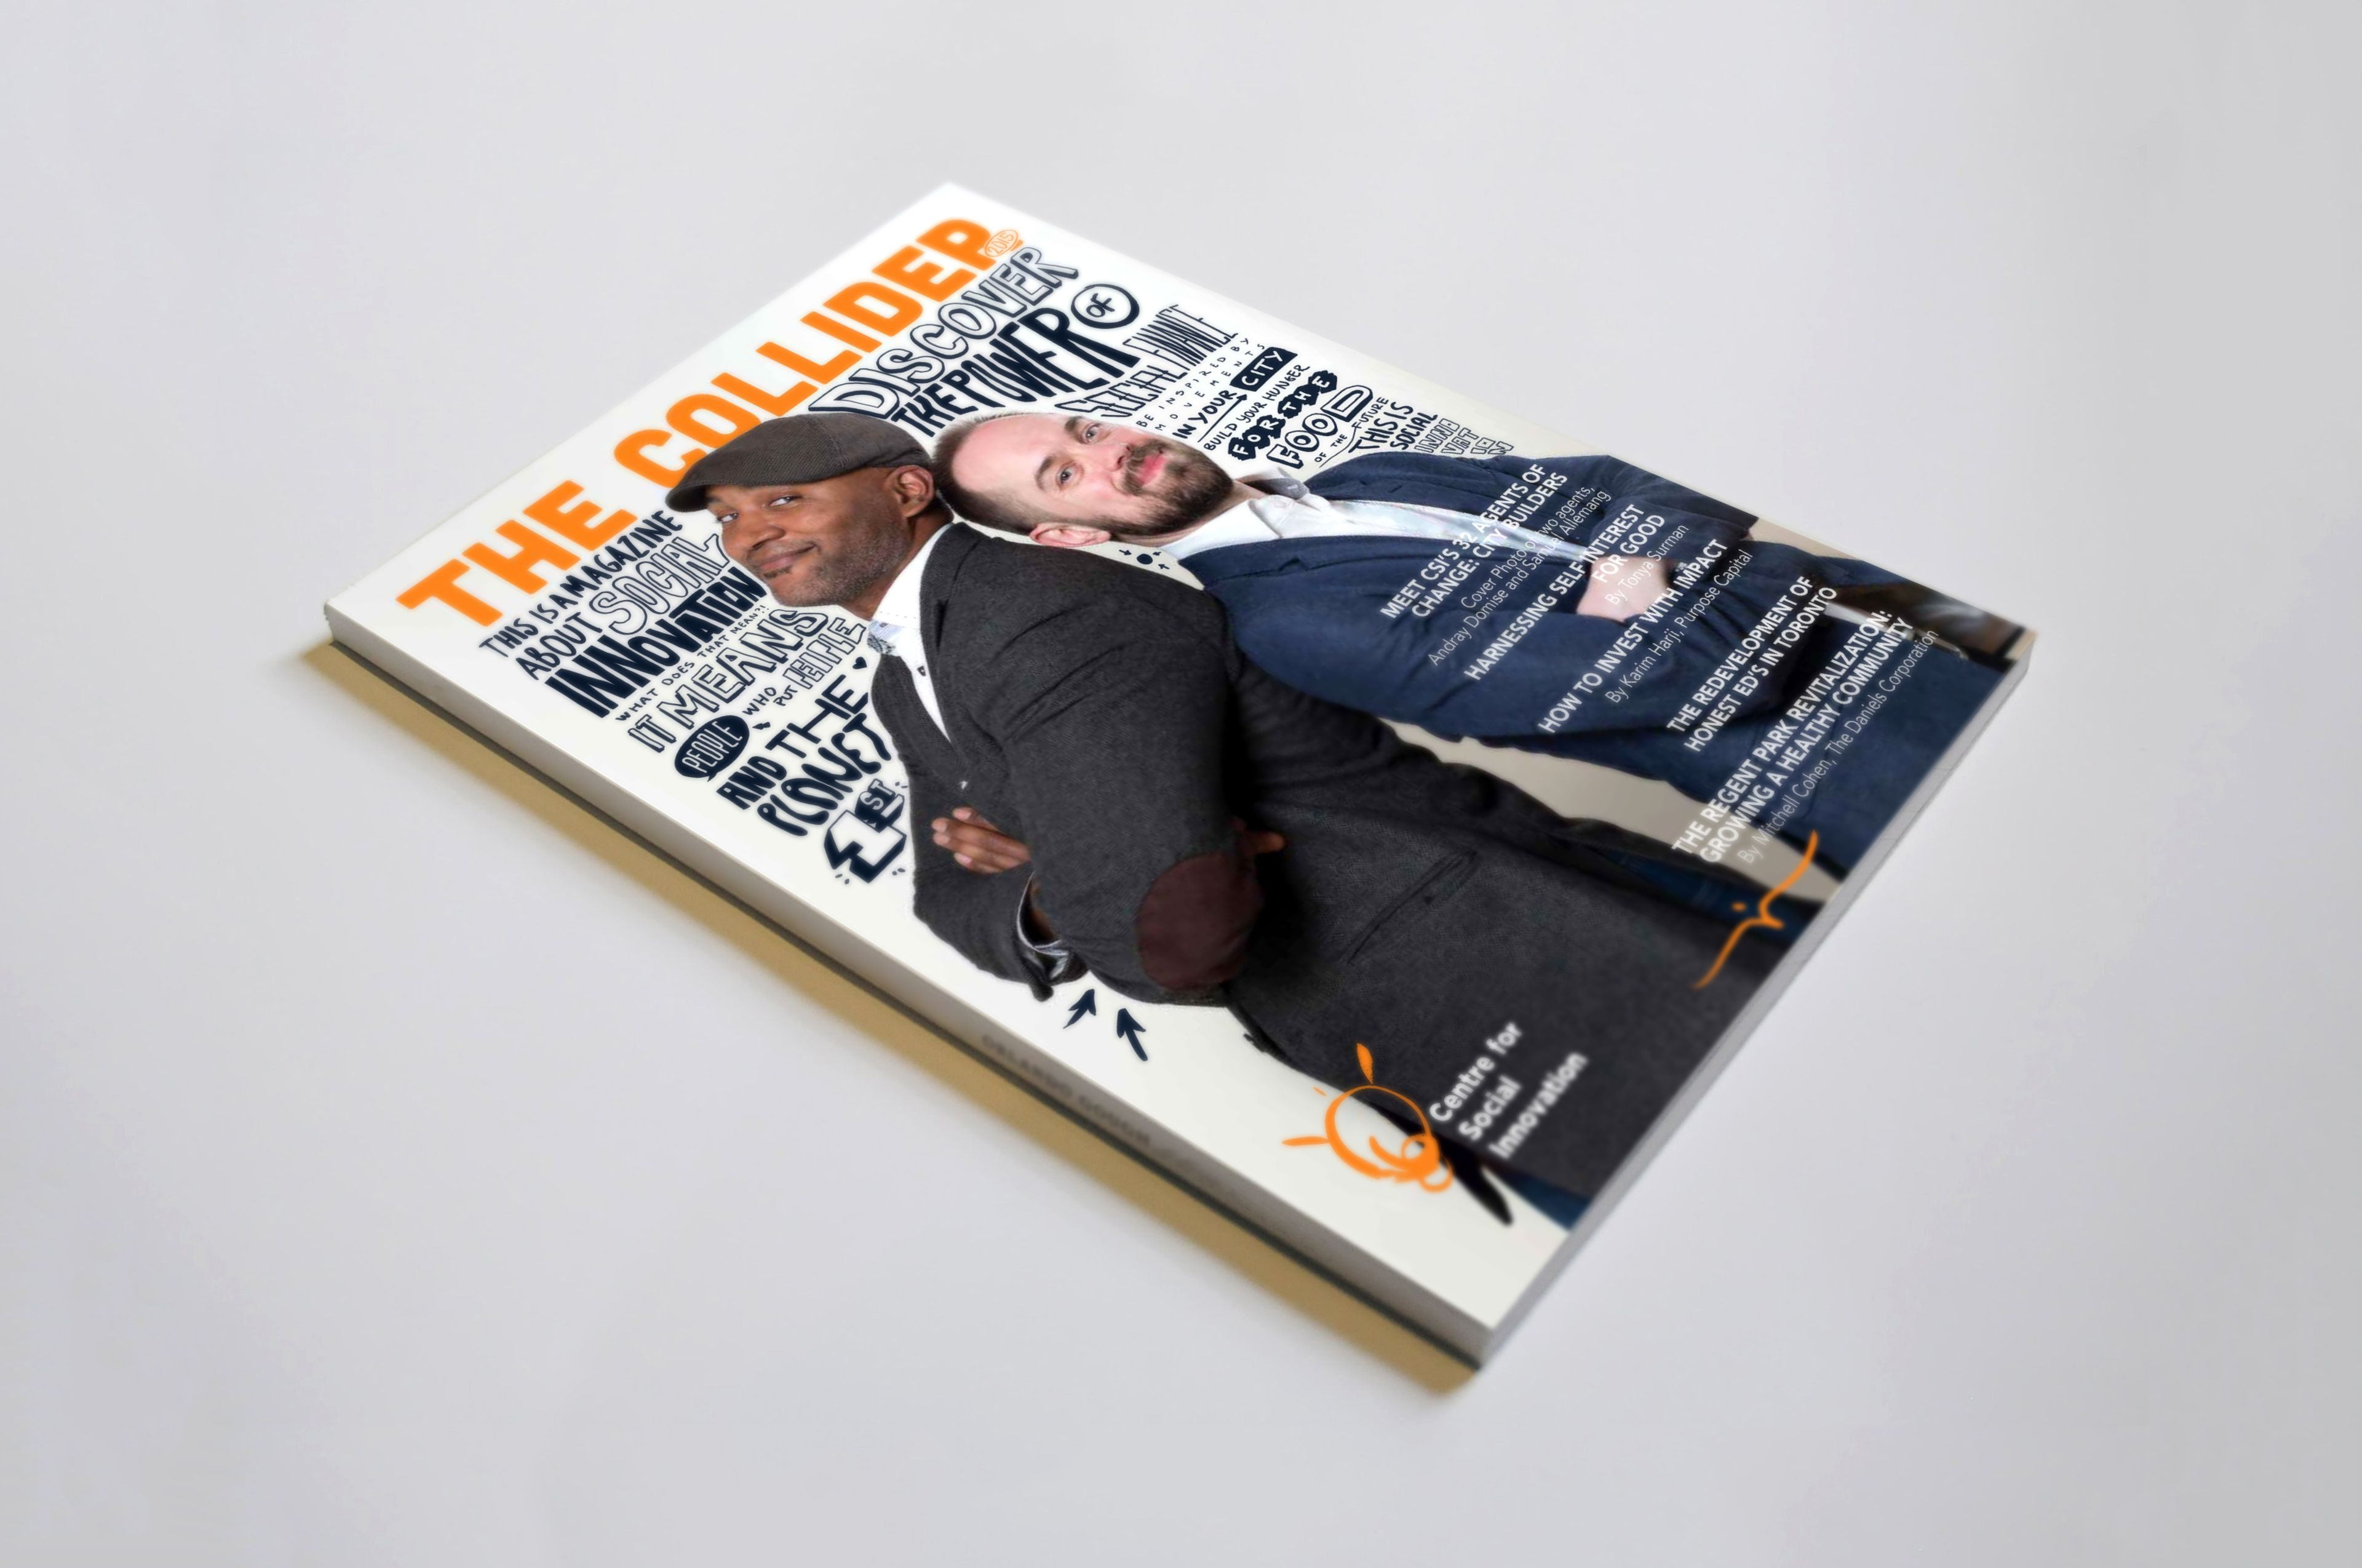 The Collider magazine is an internal publication by the CSI. The cover has two men back to back with illustrative text on-top